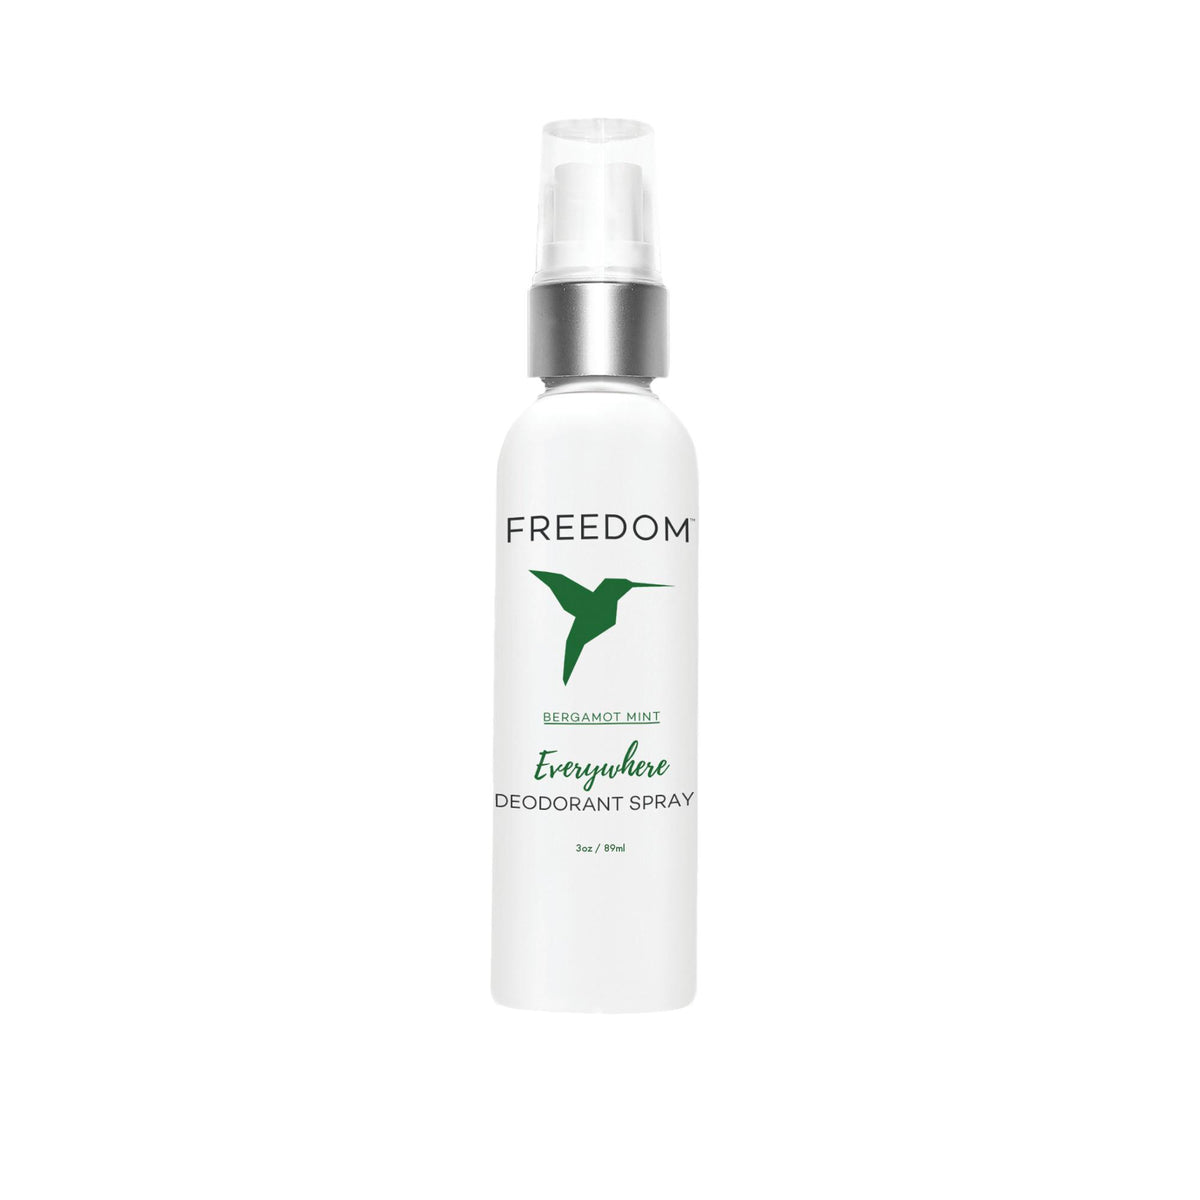 Makeup, Skin & Personal Care Bergamont Mint Freedom Natural Deodorant Everywhere Spray, 3 oz